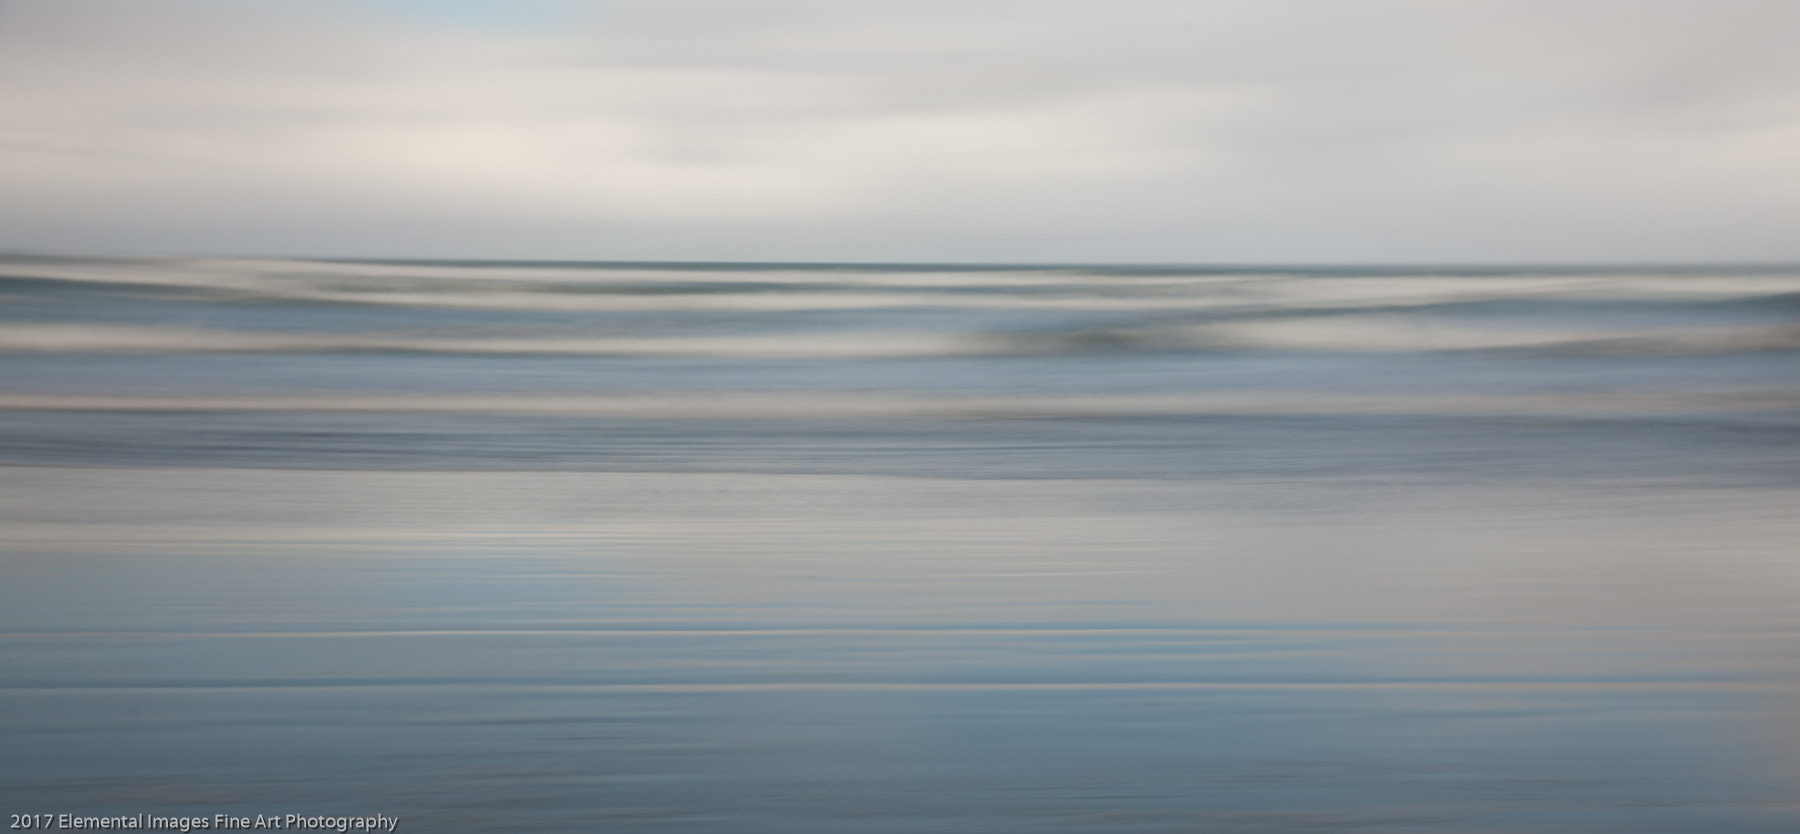 Sea and Sky #63   Bandon   OR   USA - © 2017 Elemental Images Fine Art Photography - All Rights Reserved Worldwide